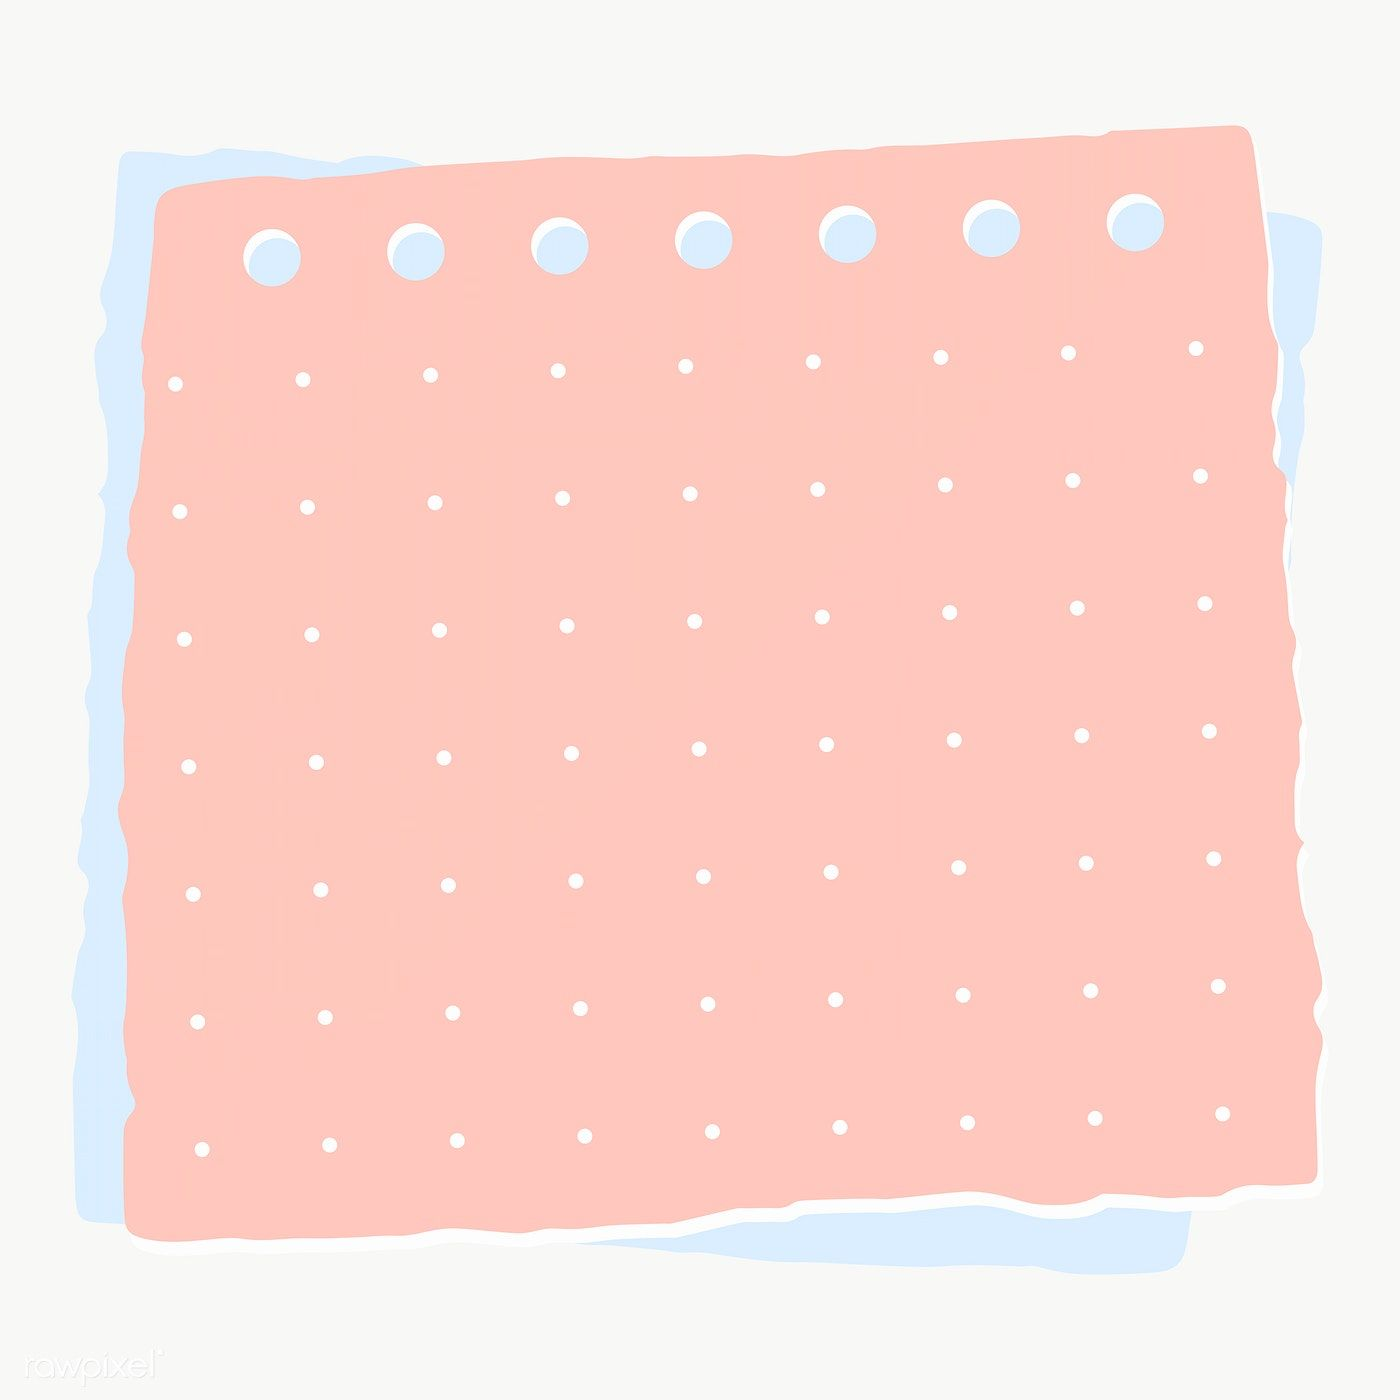 Pink Square Paper Note Social Ads Template Transparent Png Free Image By Rawpixel Com Manotang Note Paper Overlays Transparent Square Paper